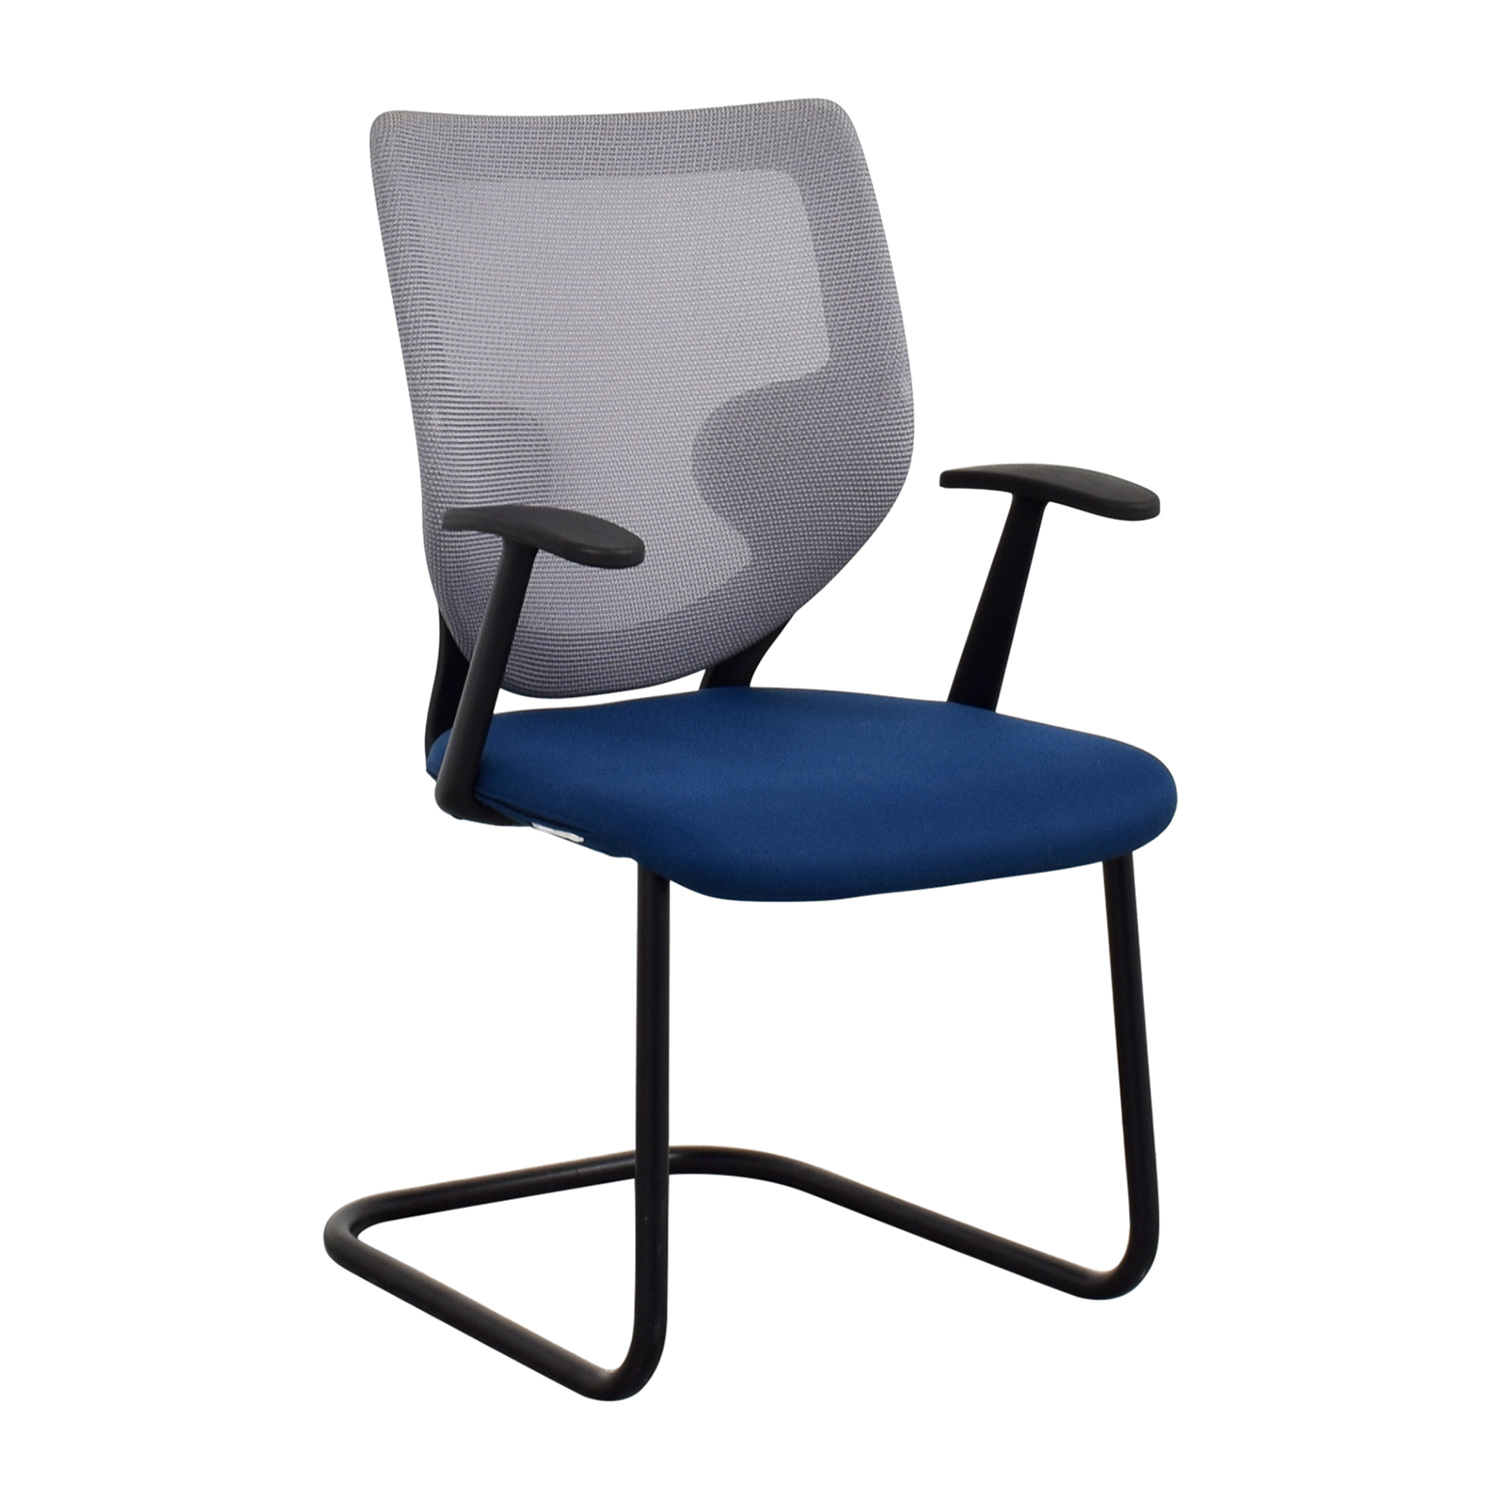 90 off keilhauer keilhauer blue mesh chair chairs for Furniture 90 off